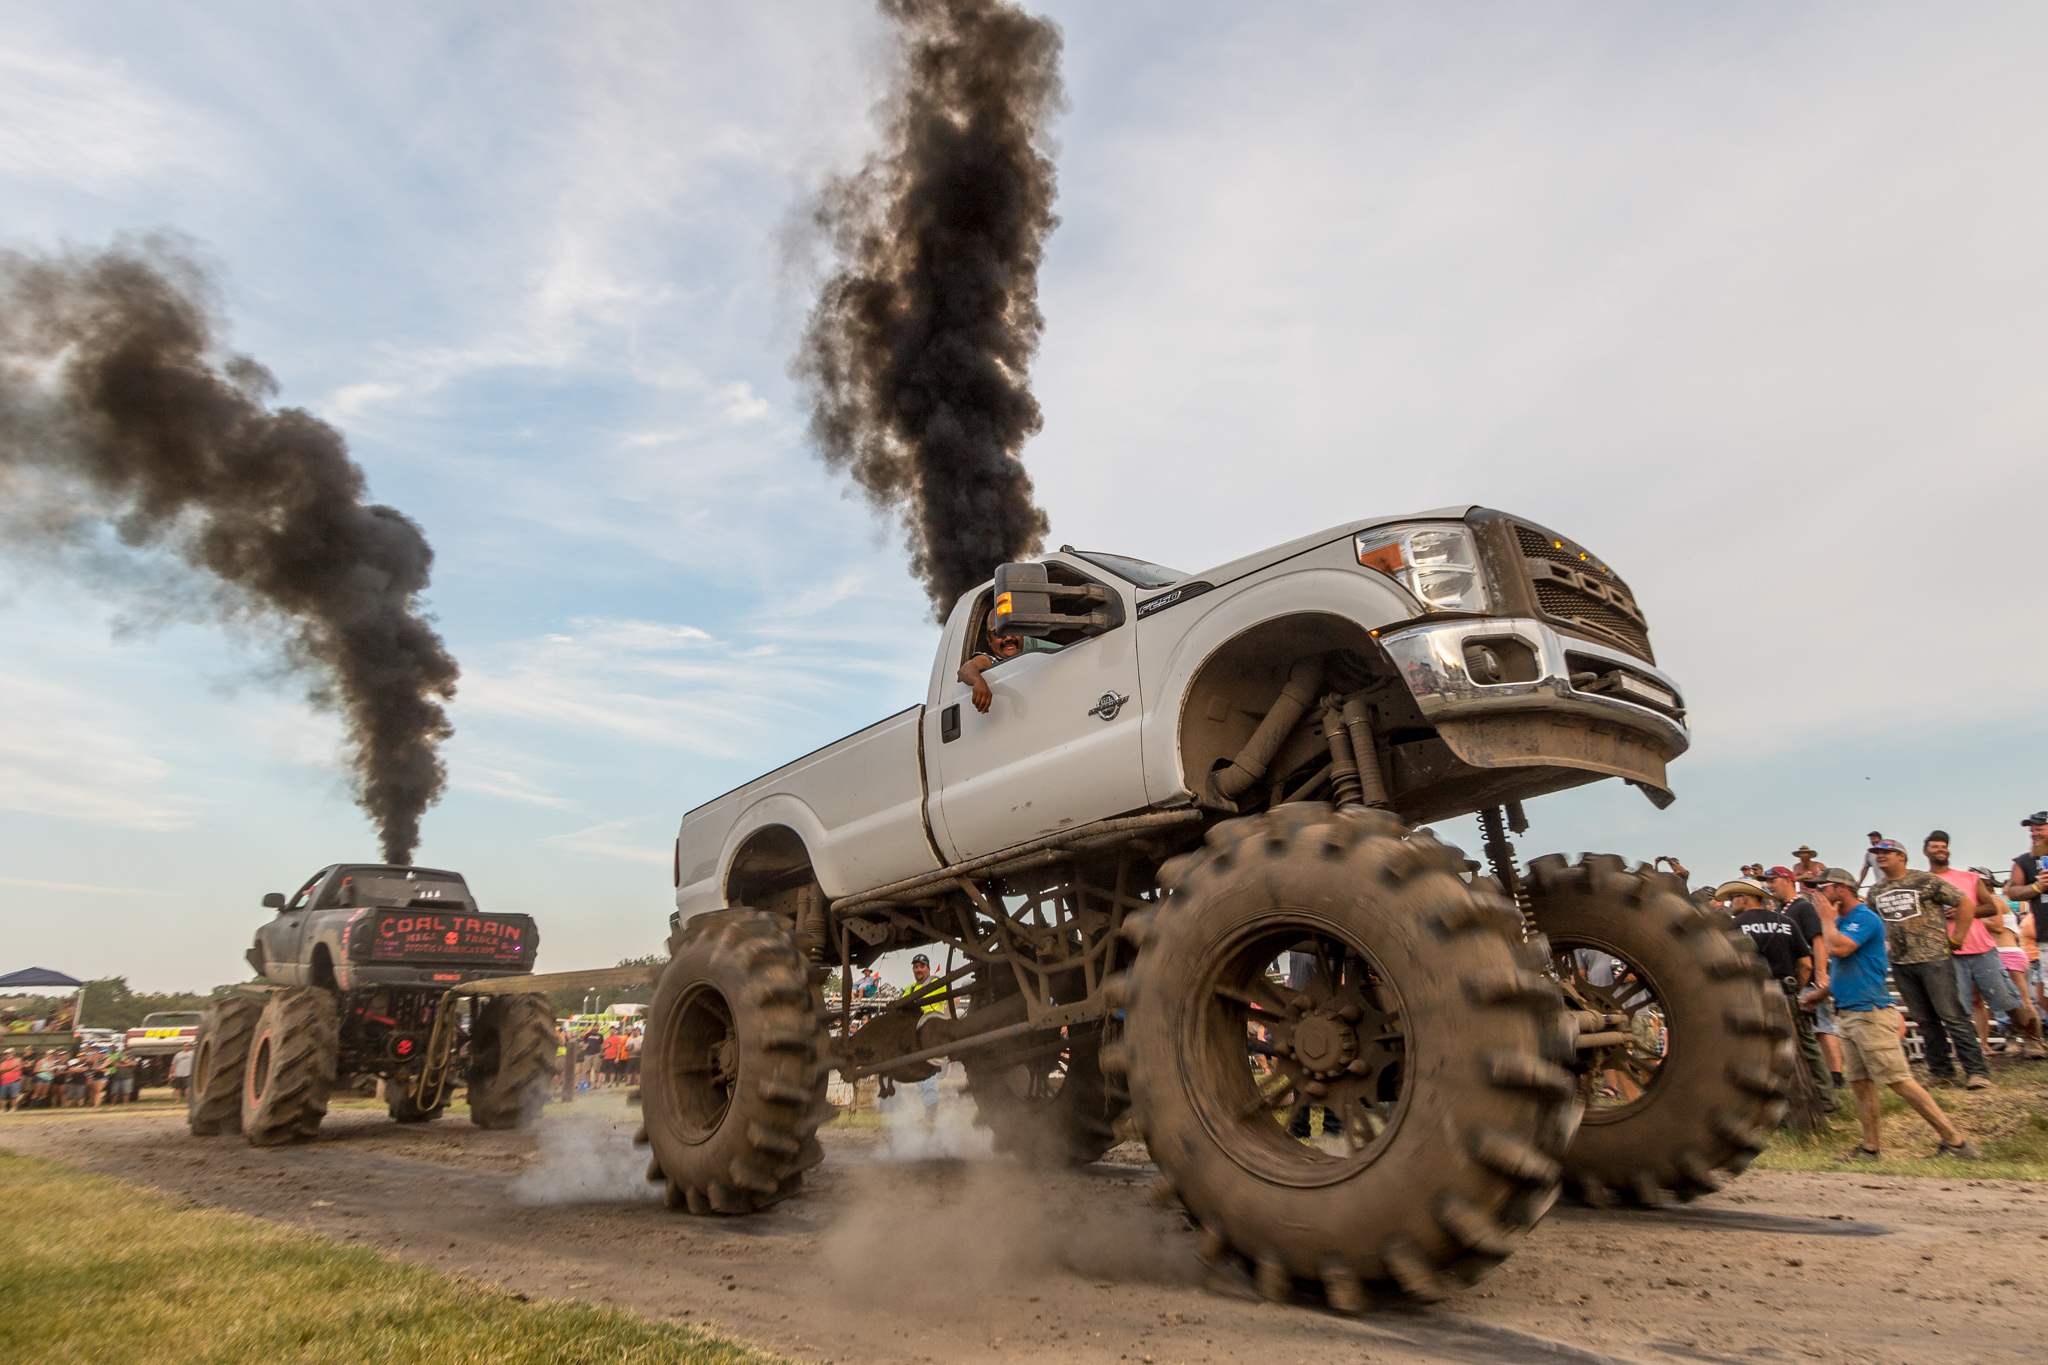 Monster trucks black exhaust smoke